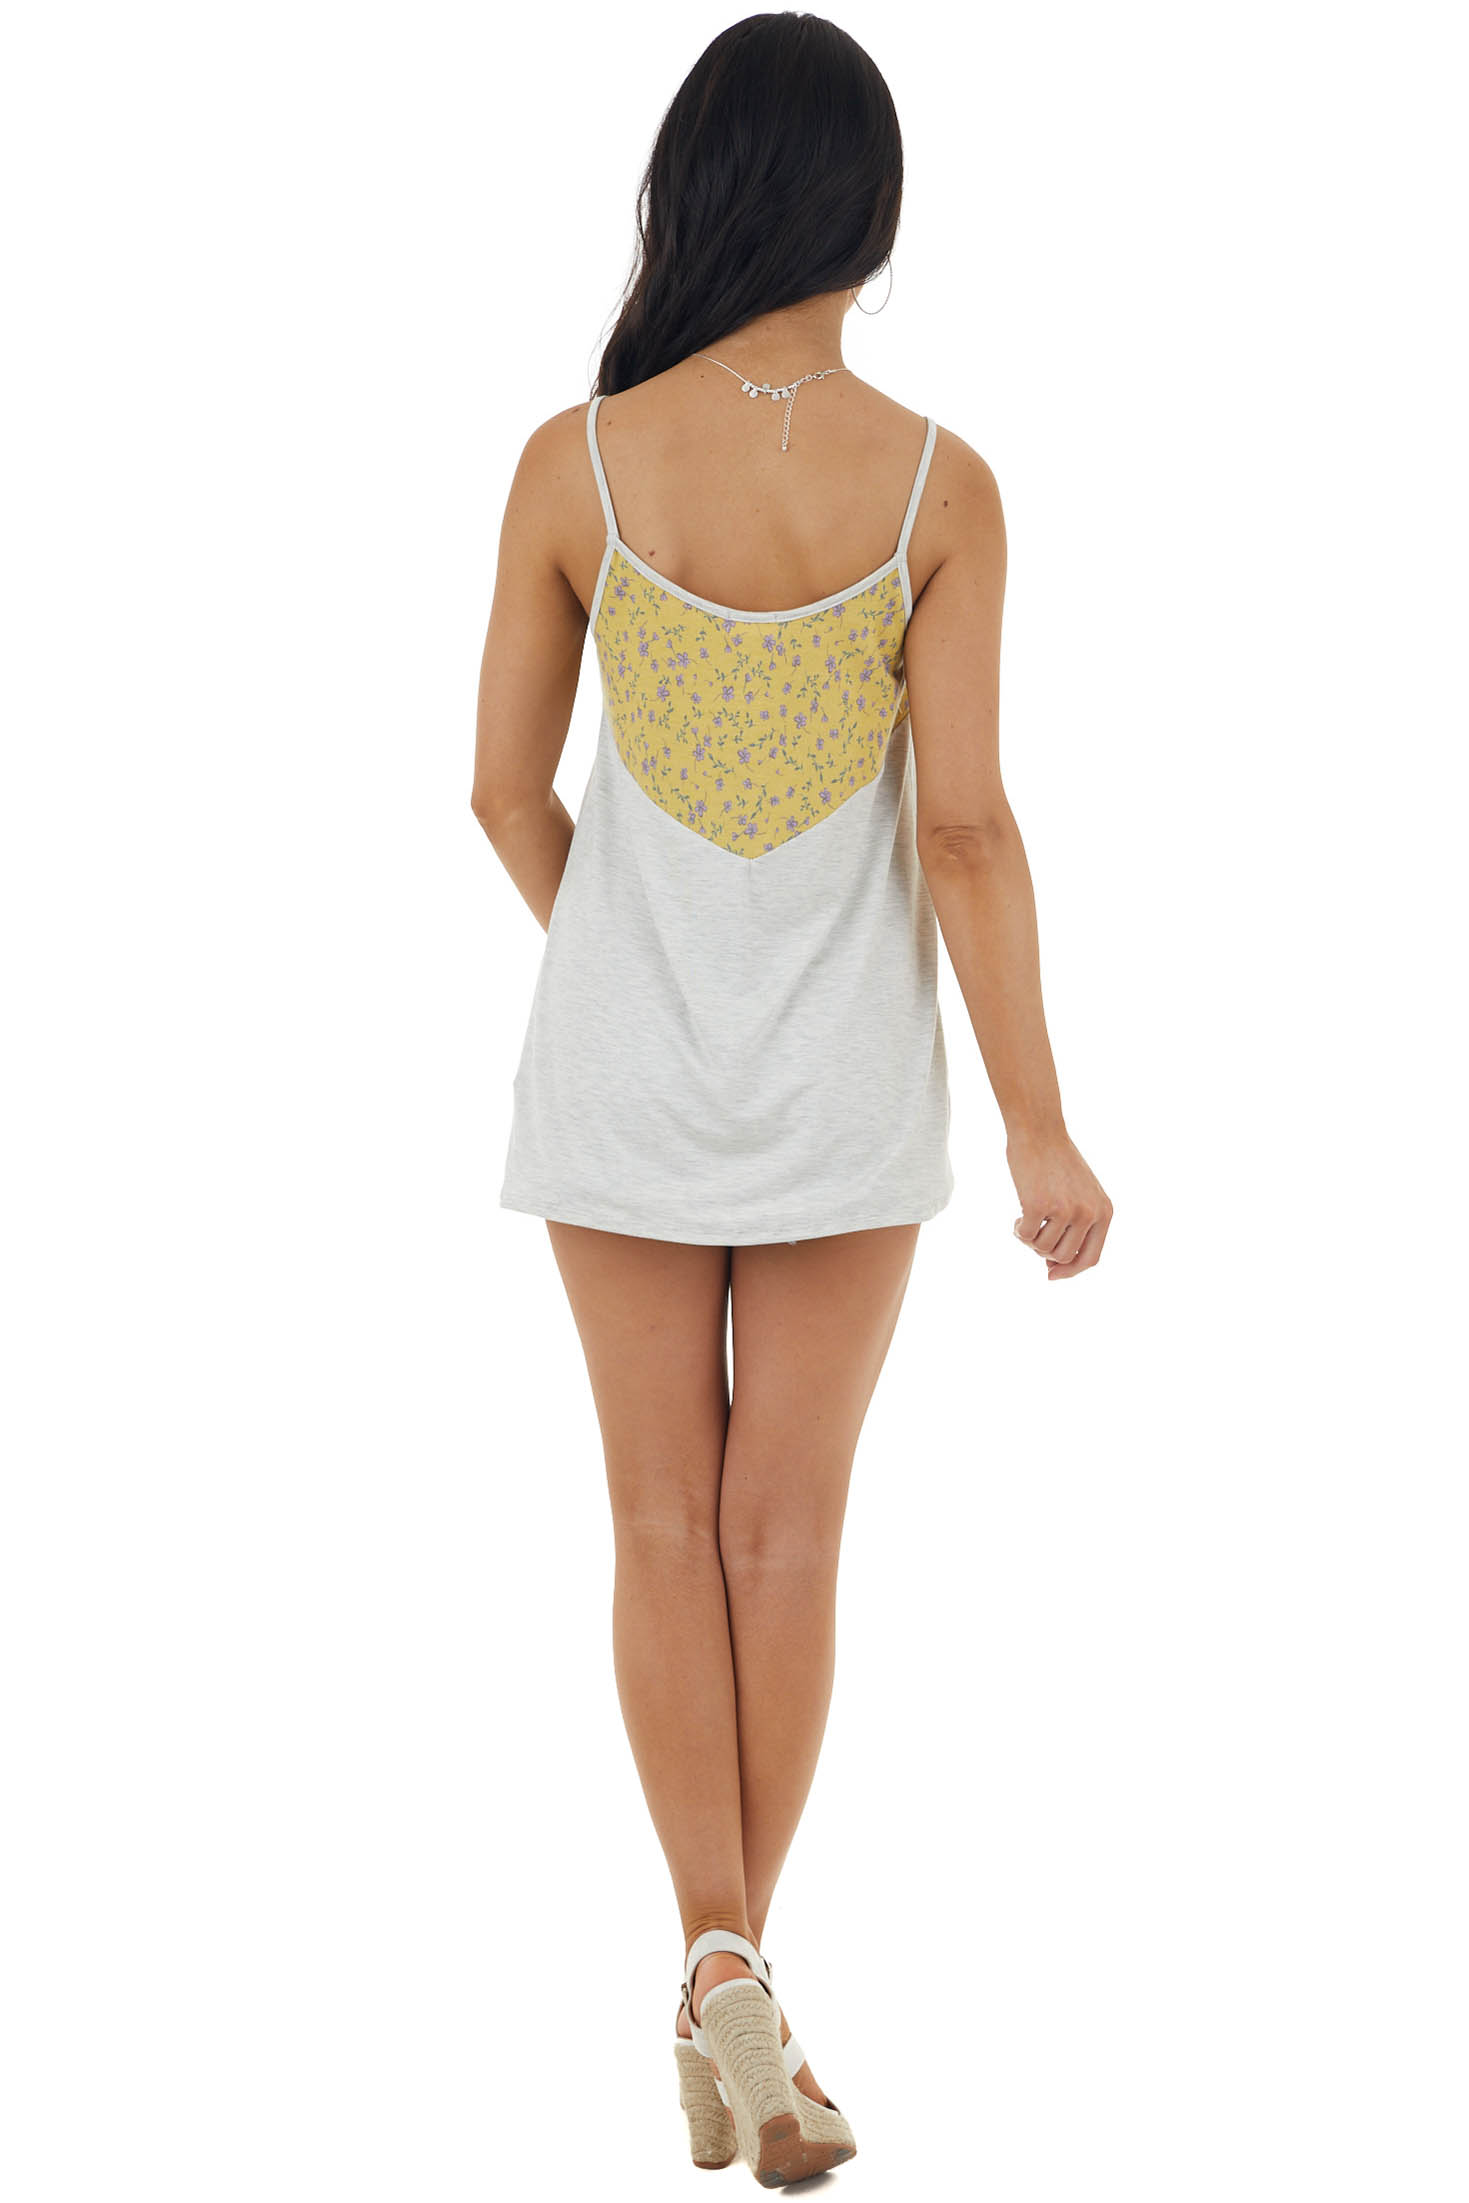 Mustard and Heathered Dove Grey Cami Top with Floral Print